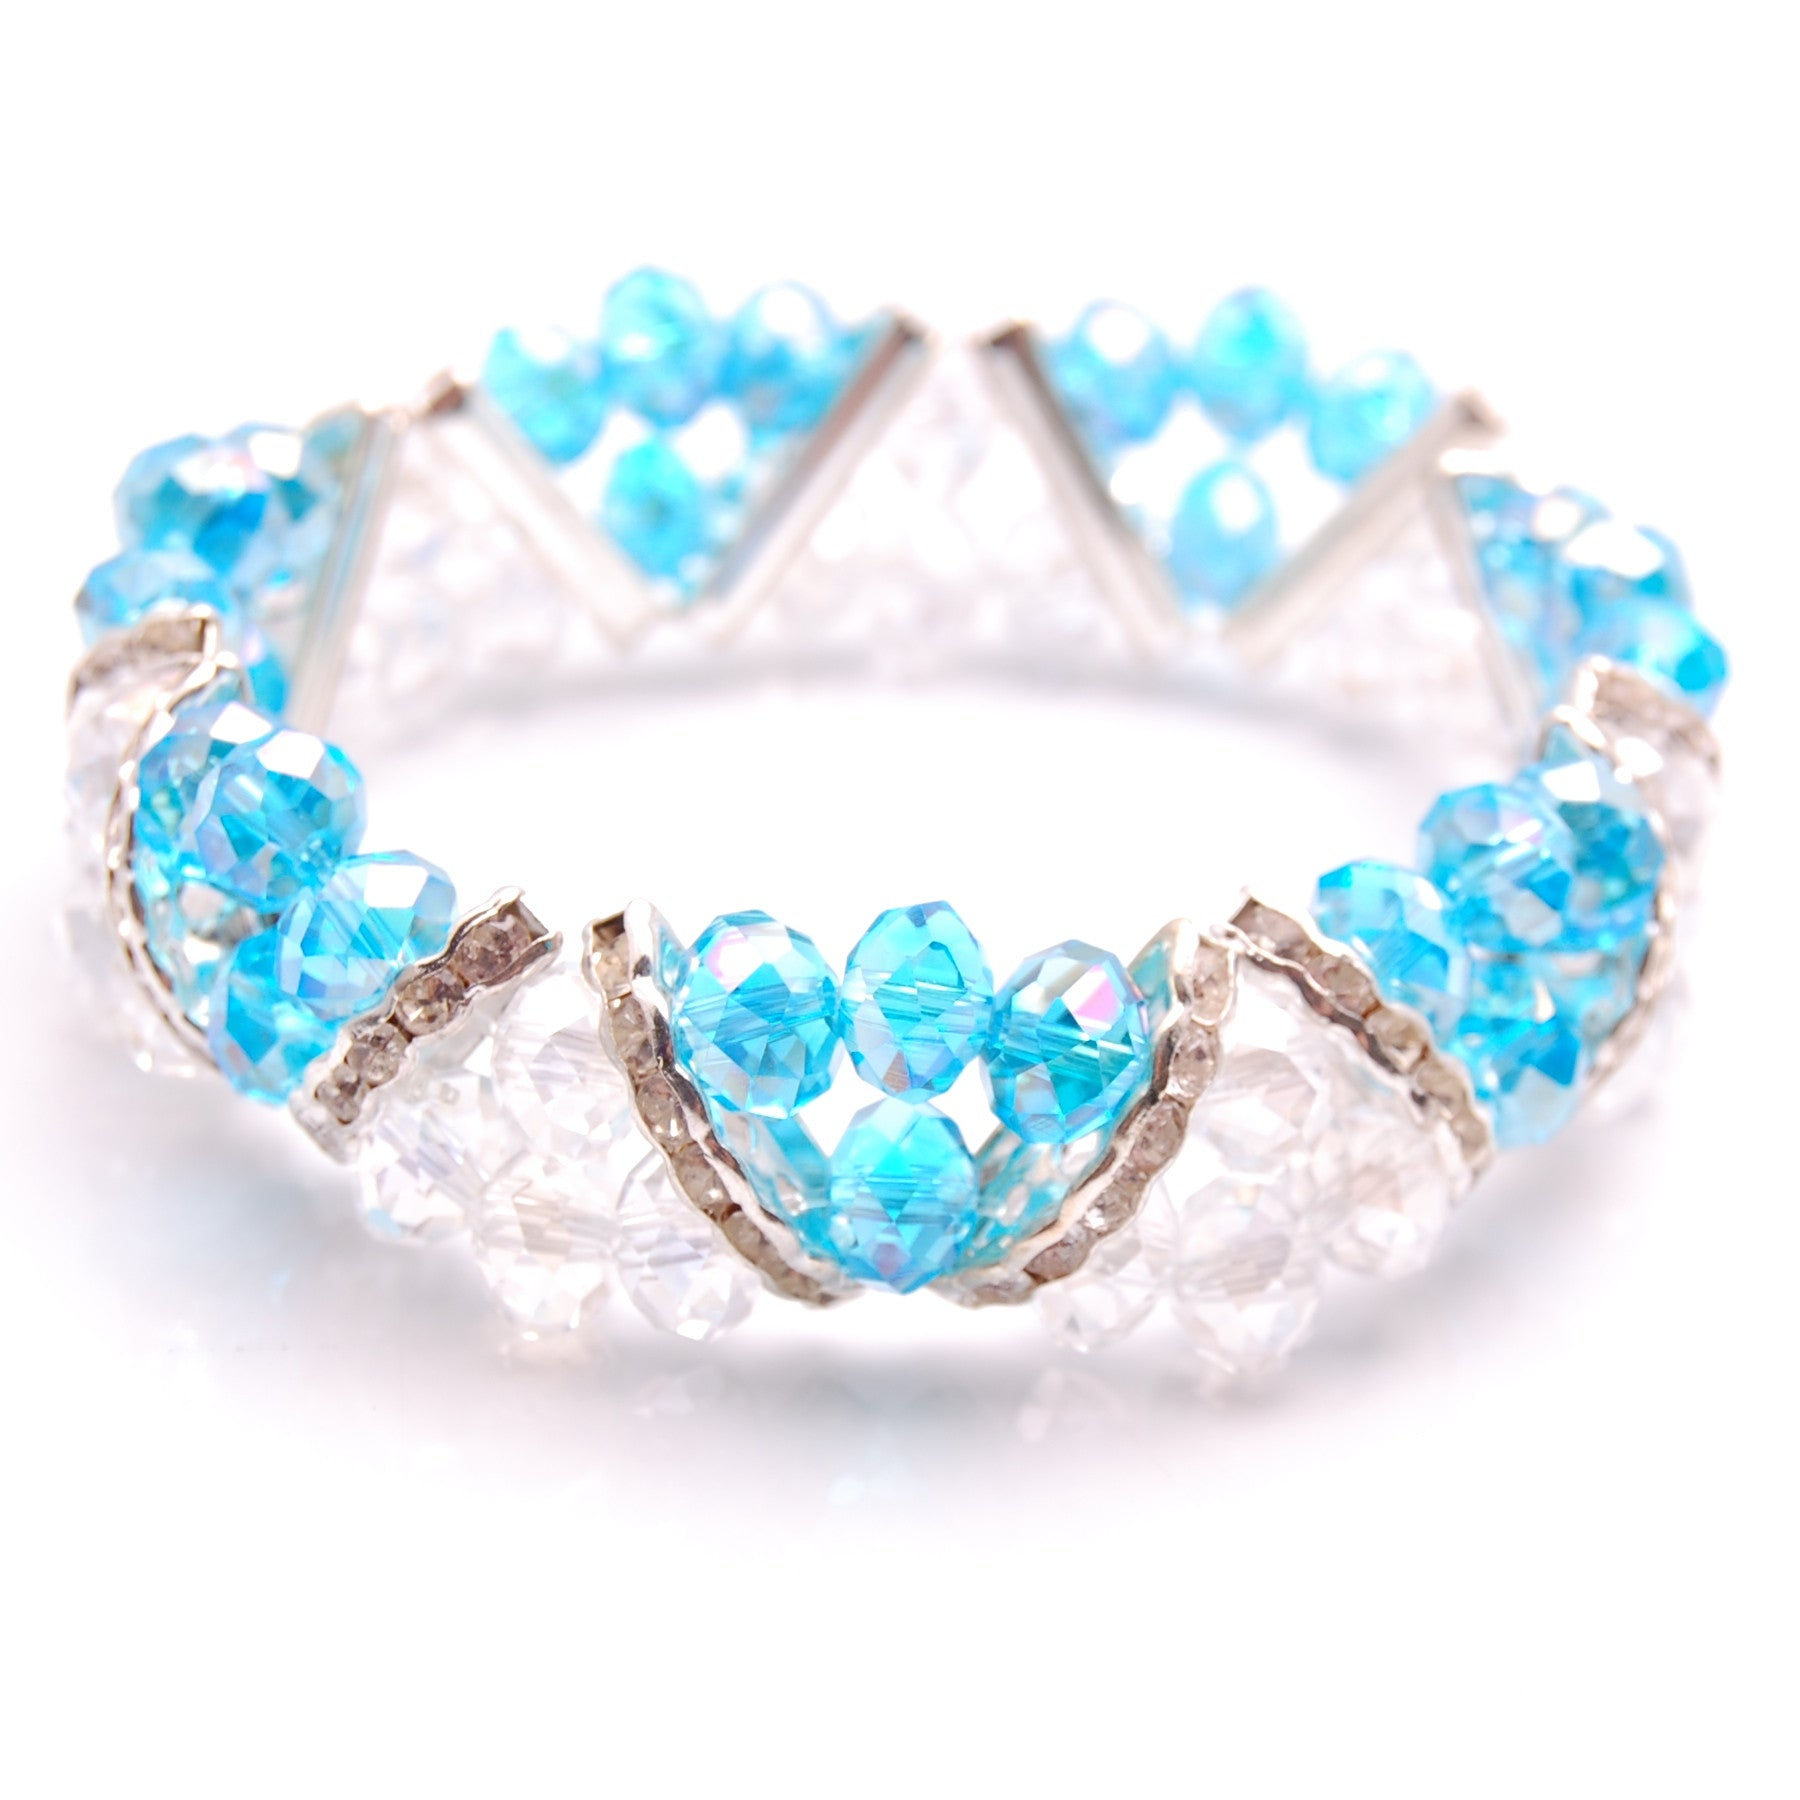 Aqua Blue & Clear Crystal and Rhinestone Stretch Bracelet